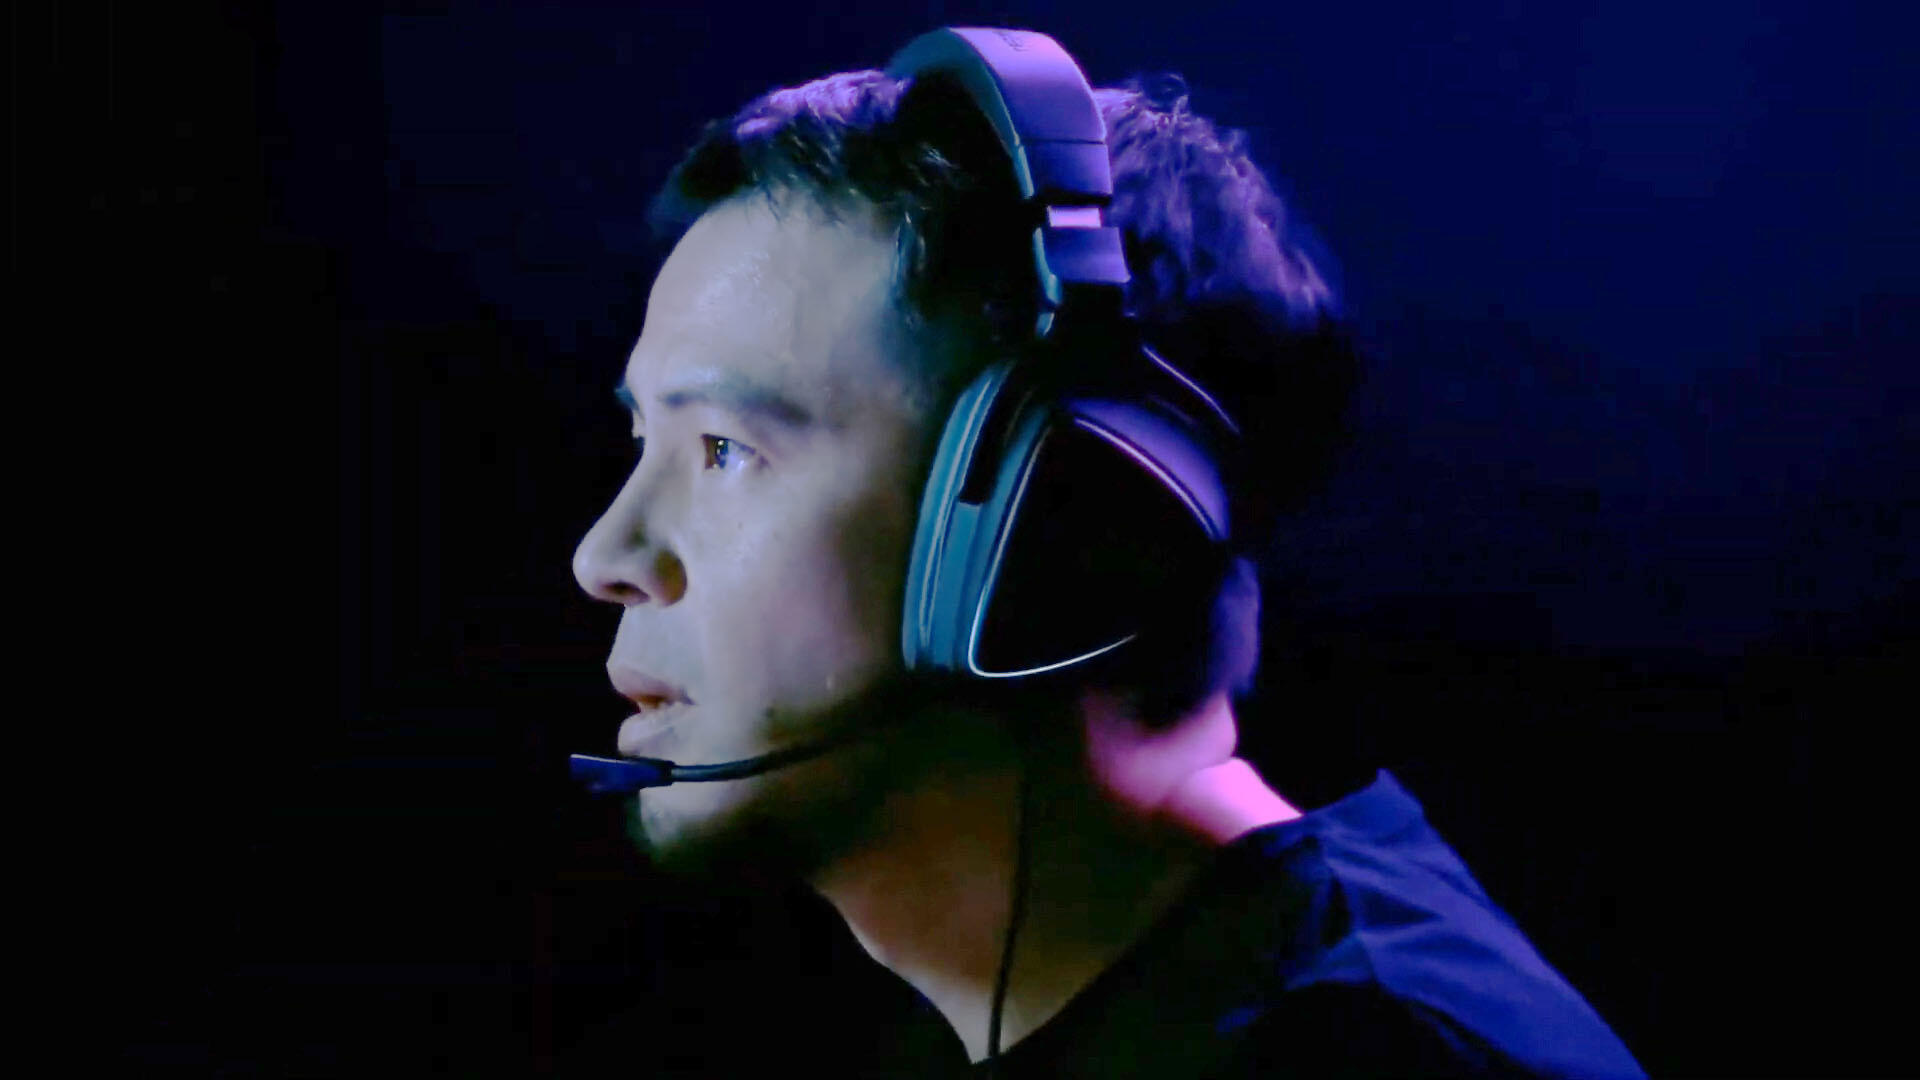 Video: Asus reveals all-new ROG Delta S gaming headset